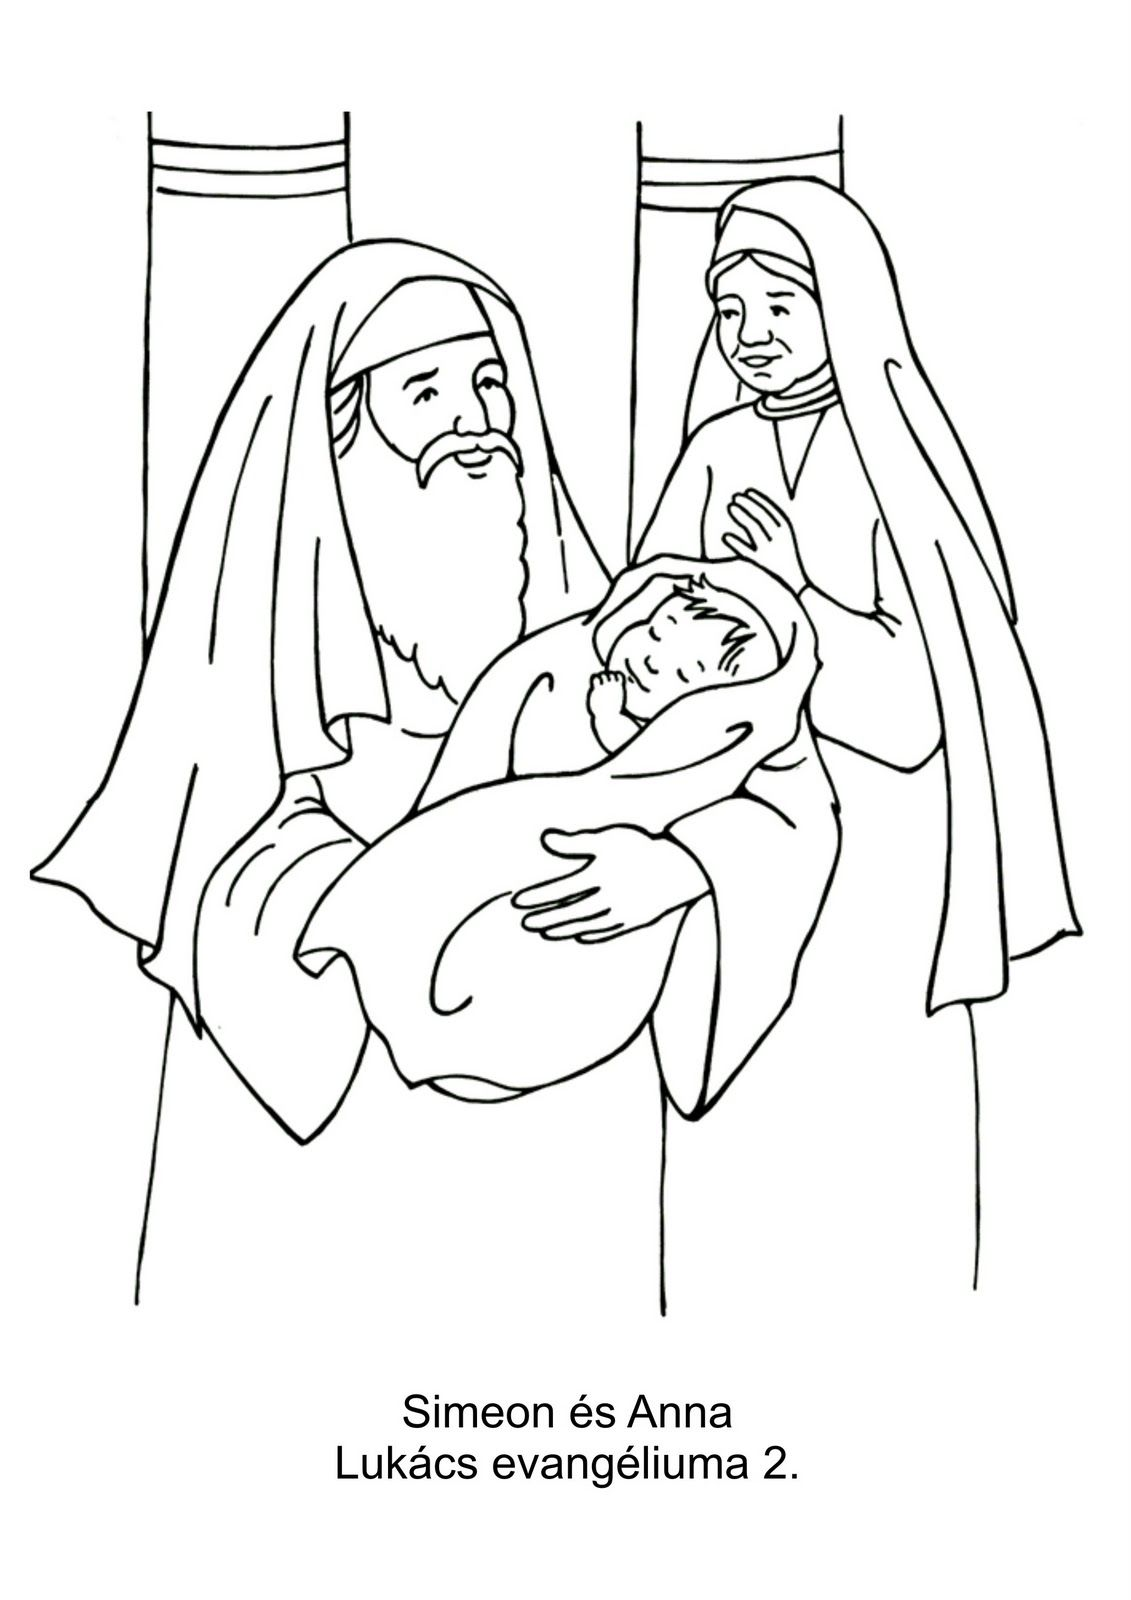 zechariah visions coloring pages - photo#16